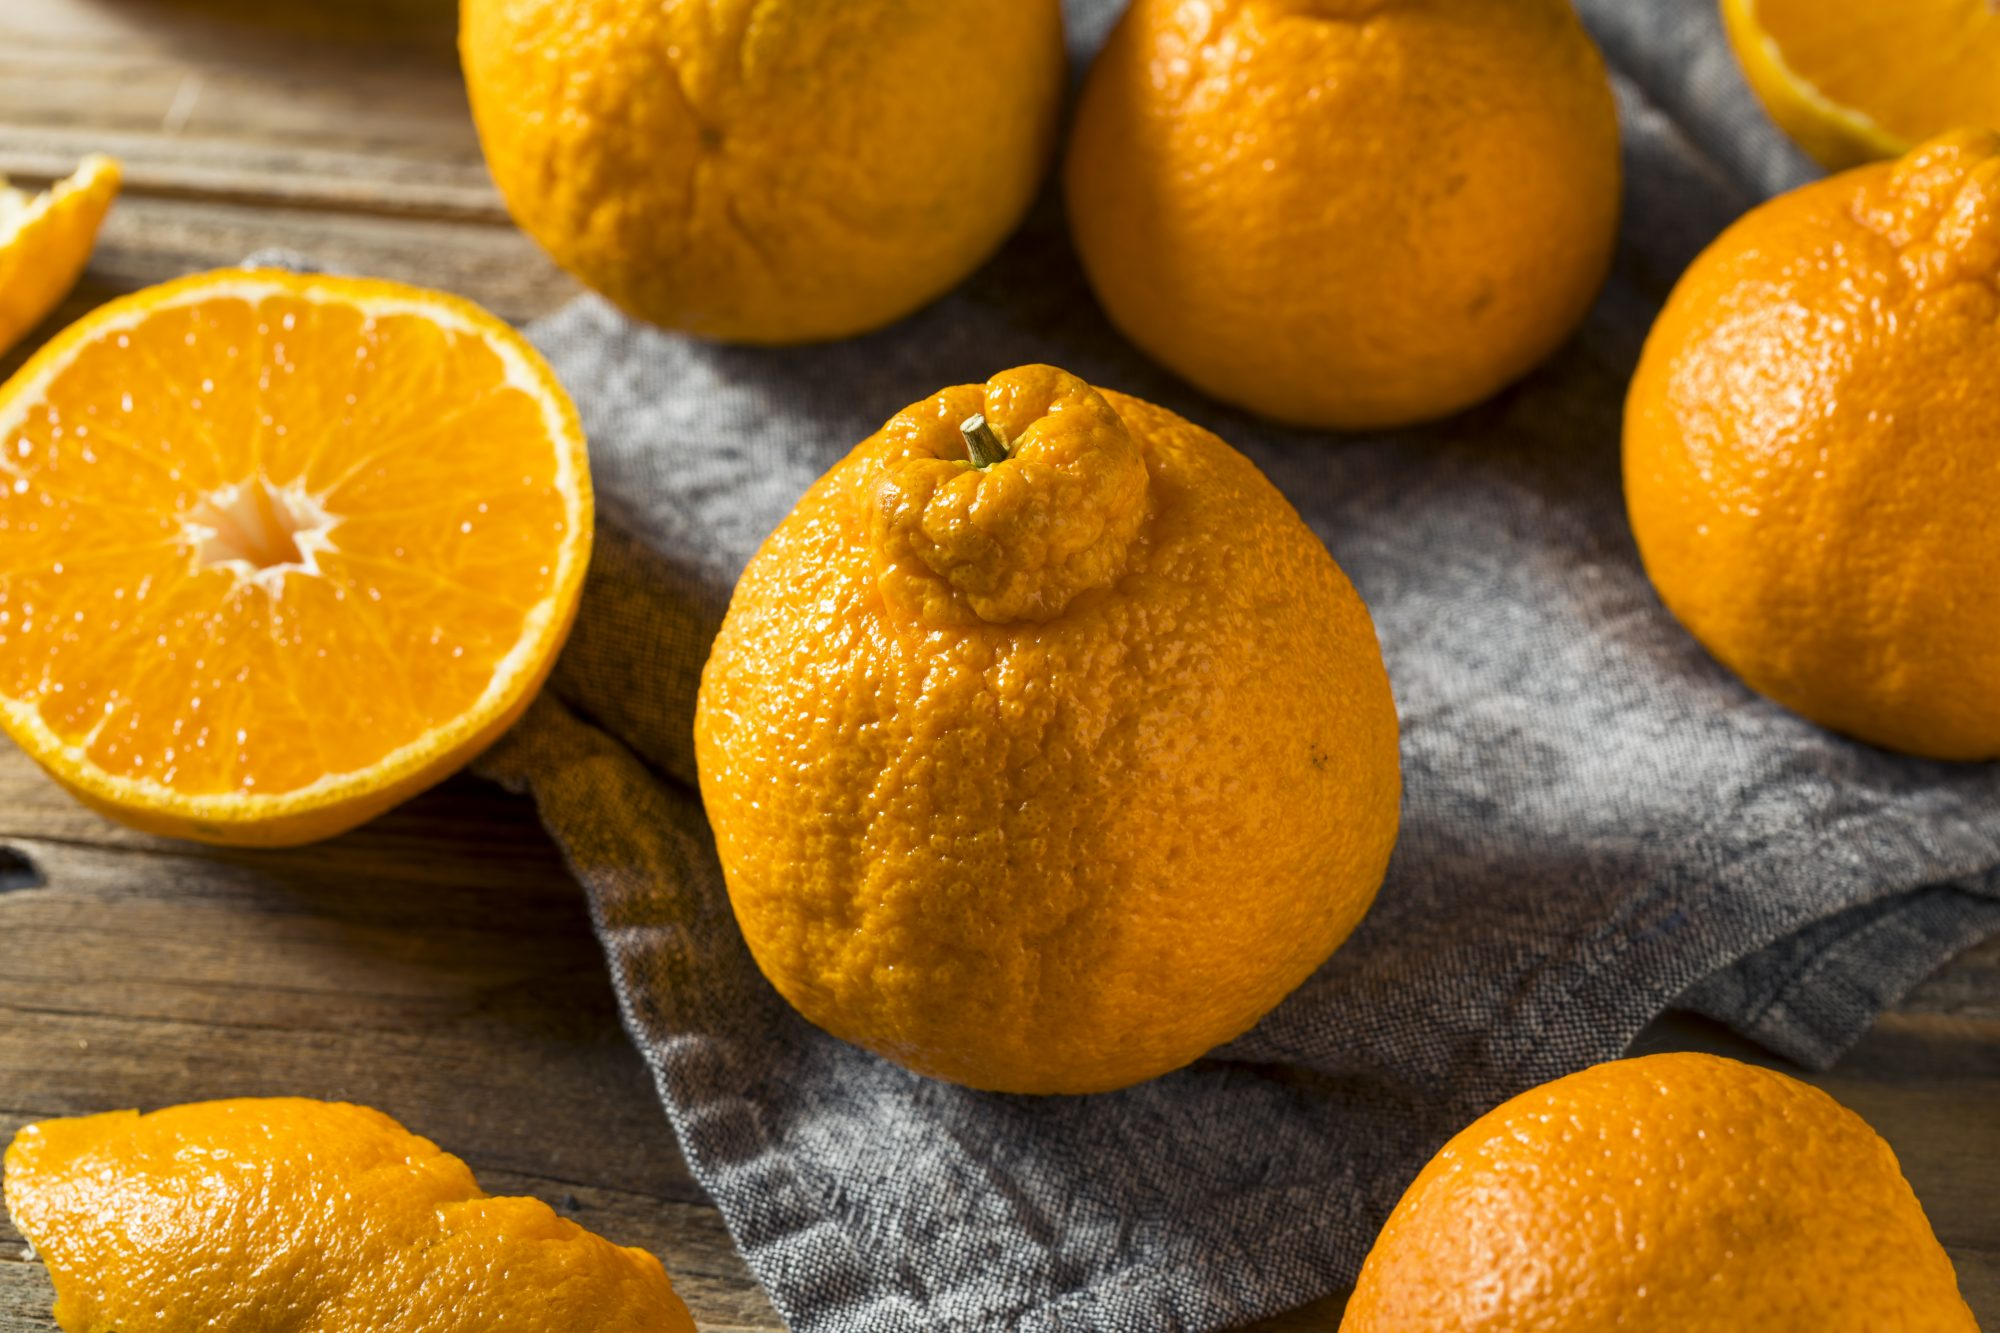 grouping of sumo oranges on table